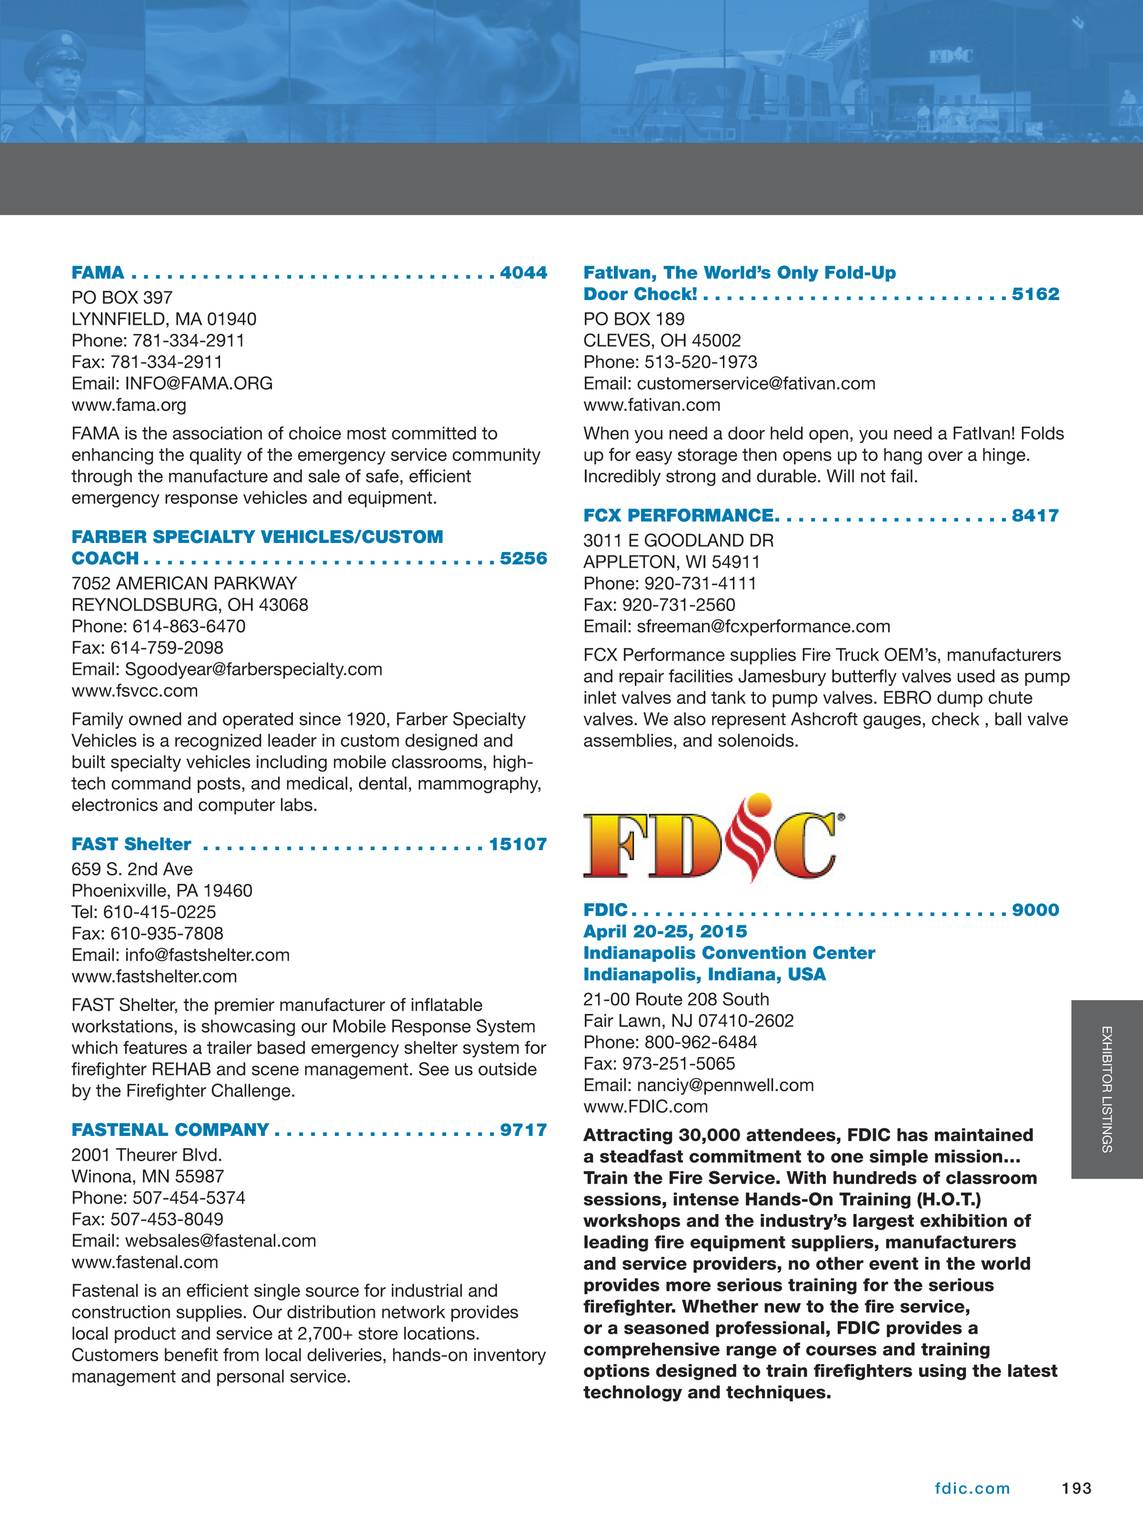 Pennwell Supplements - FDIC 2014 Show Guide - page 194